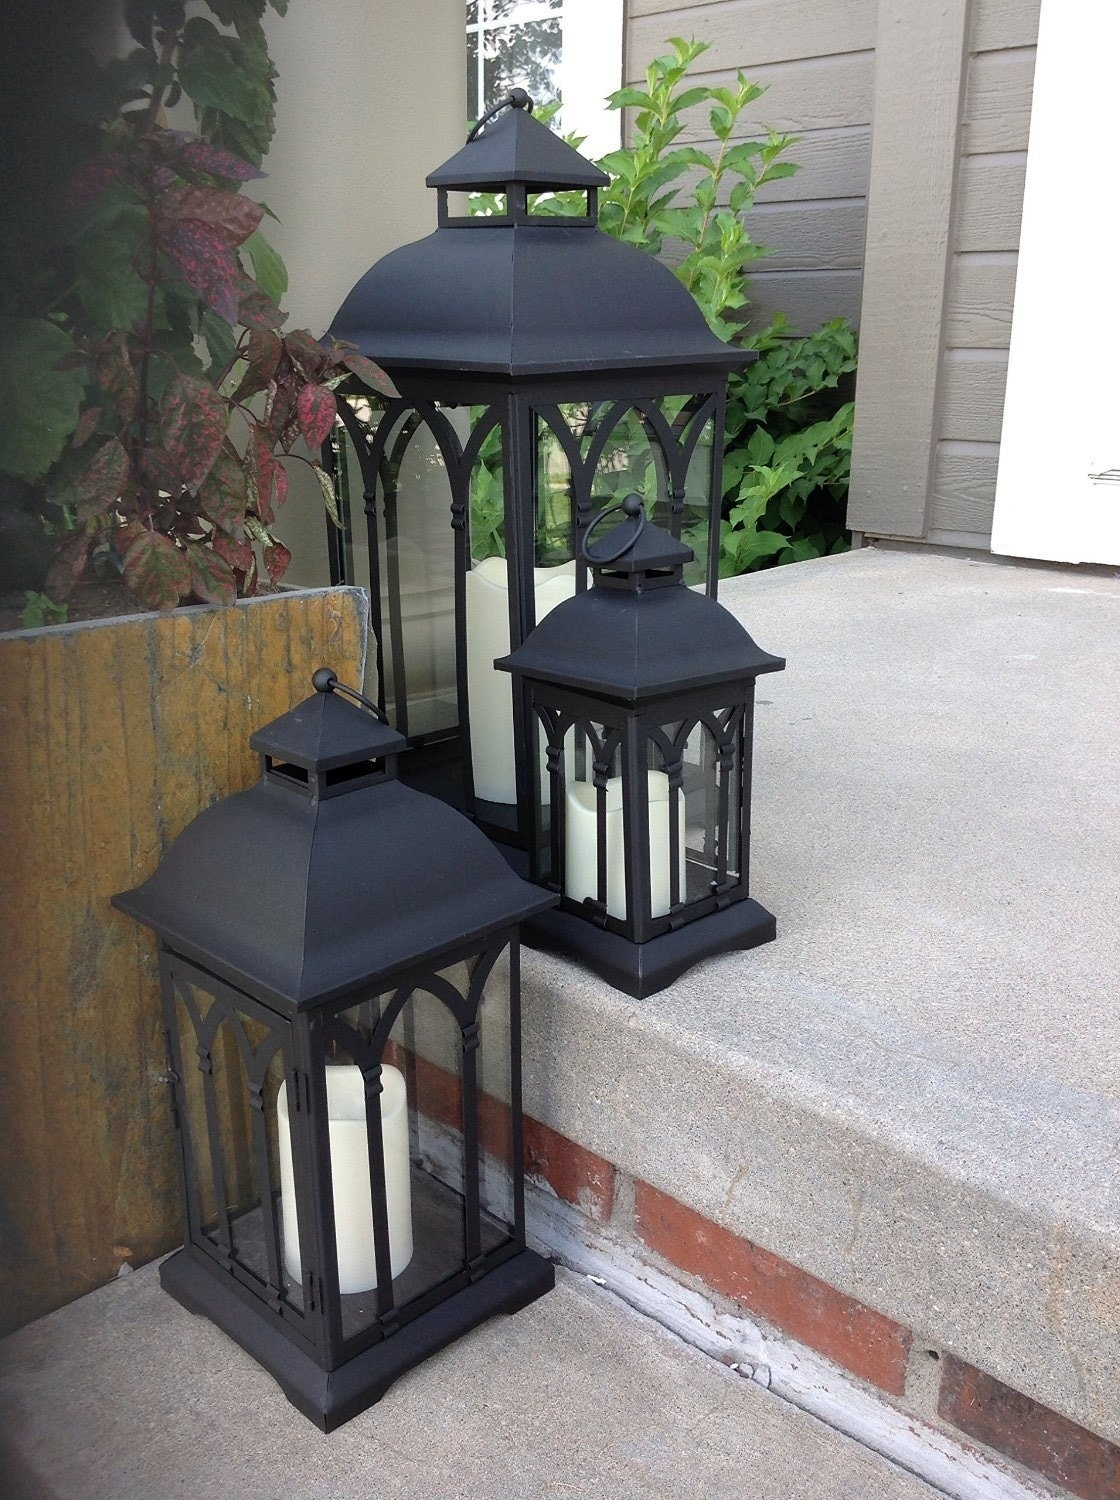 Best Rated In Outdoor Tabletop Lanterns & Helpful Customer Reviews Regarding Outdoor Table Lanterns (View 4 of 20)